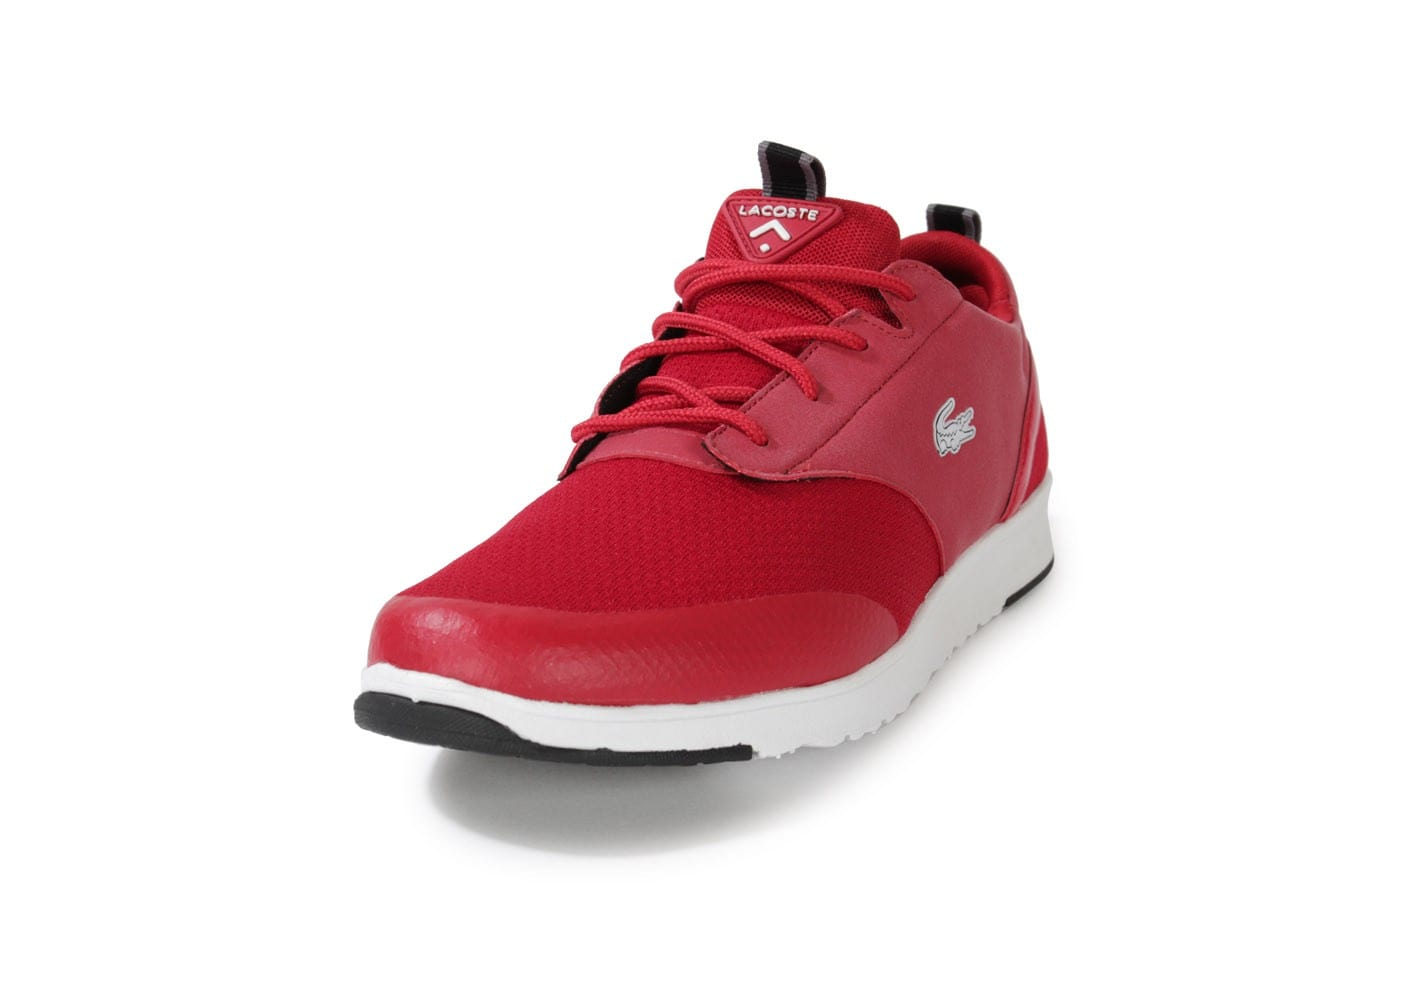 577eb1e5ac Lacoste Light 2.0 Rouge - Chaussures Baskets homme - Chausport